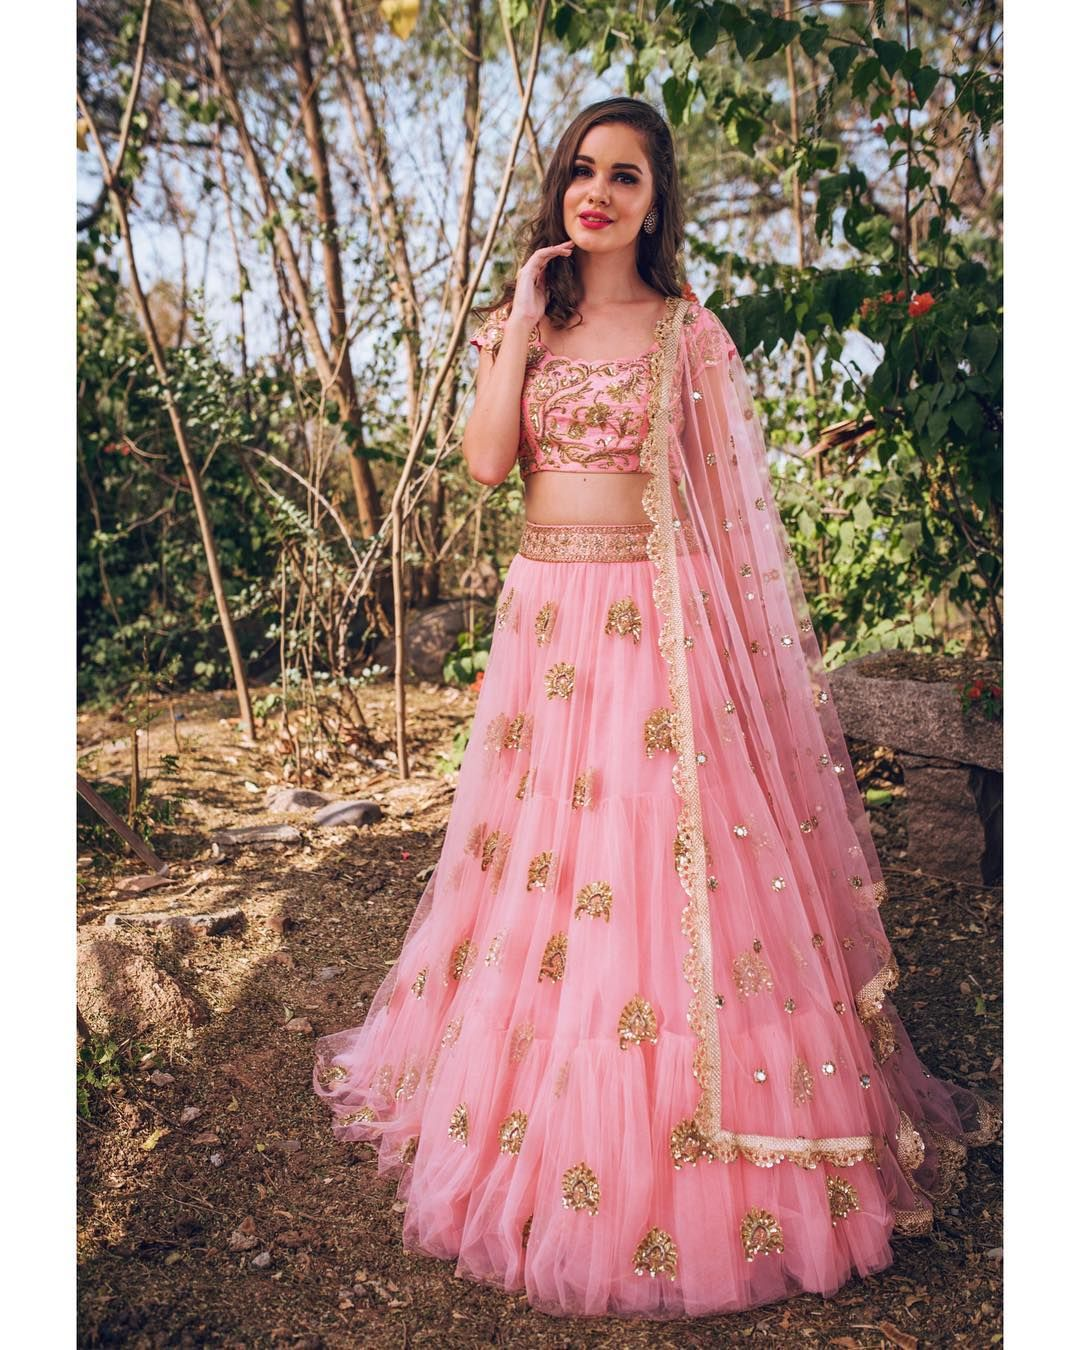 2257863b5a Stunning blush pink color designer lehenga and blouse with net dupatta.  Lehenga and blouse with hand embroidery zardosi work. Kamala~ Meenakshi  collection ...